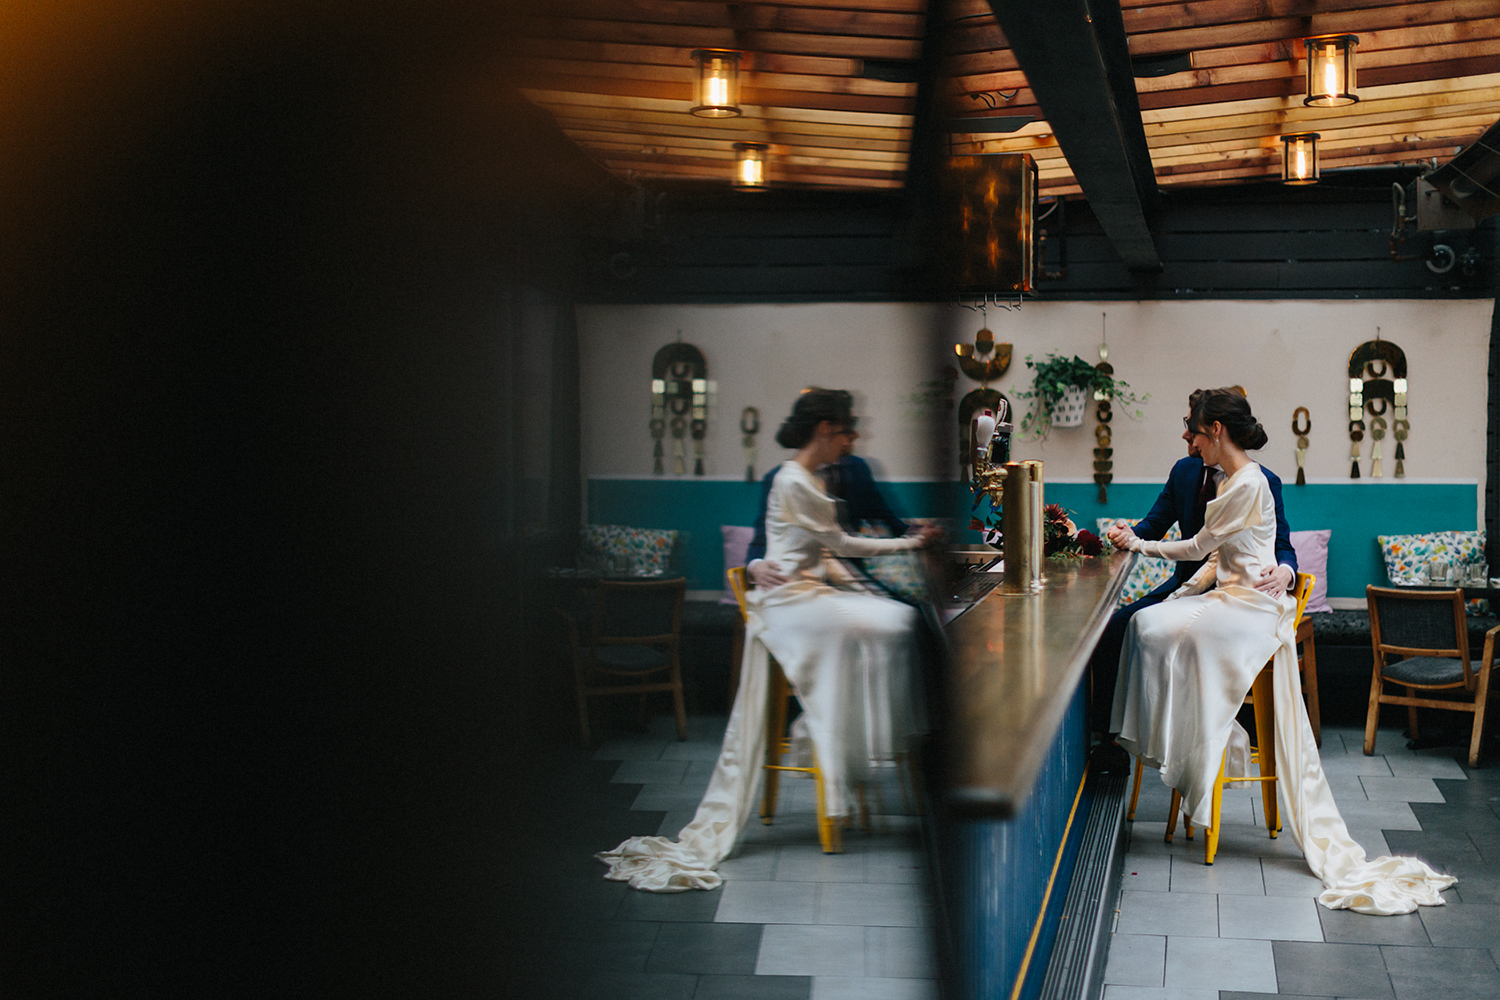 film-artistic-fine-art-weird-cool-tattooed-bride-and-groom-couples-portraits-at-the-bar-vintage-wedding-elopement-inspiration-bouquet-by-timberlost-Toronto-Elopement-at-the-Drake-Hotel-Torontos-Best-elopement-photographers-candid-documentary.jpg